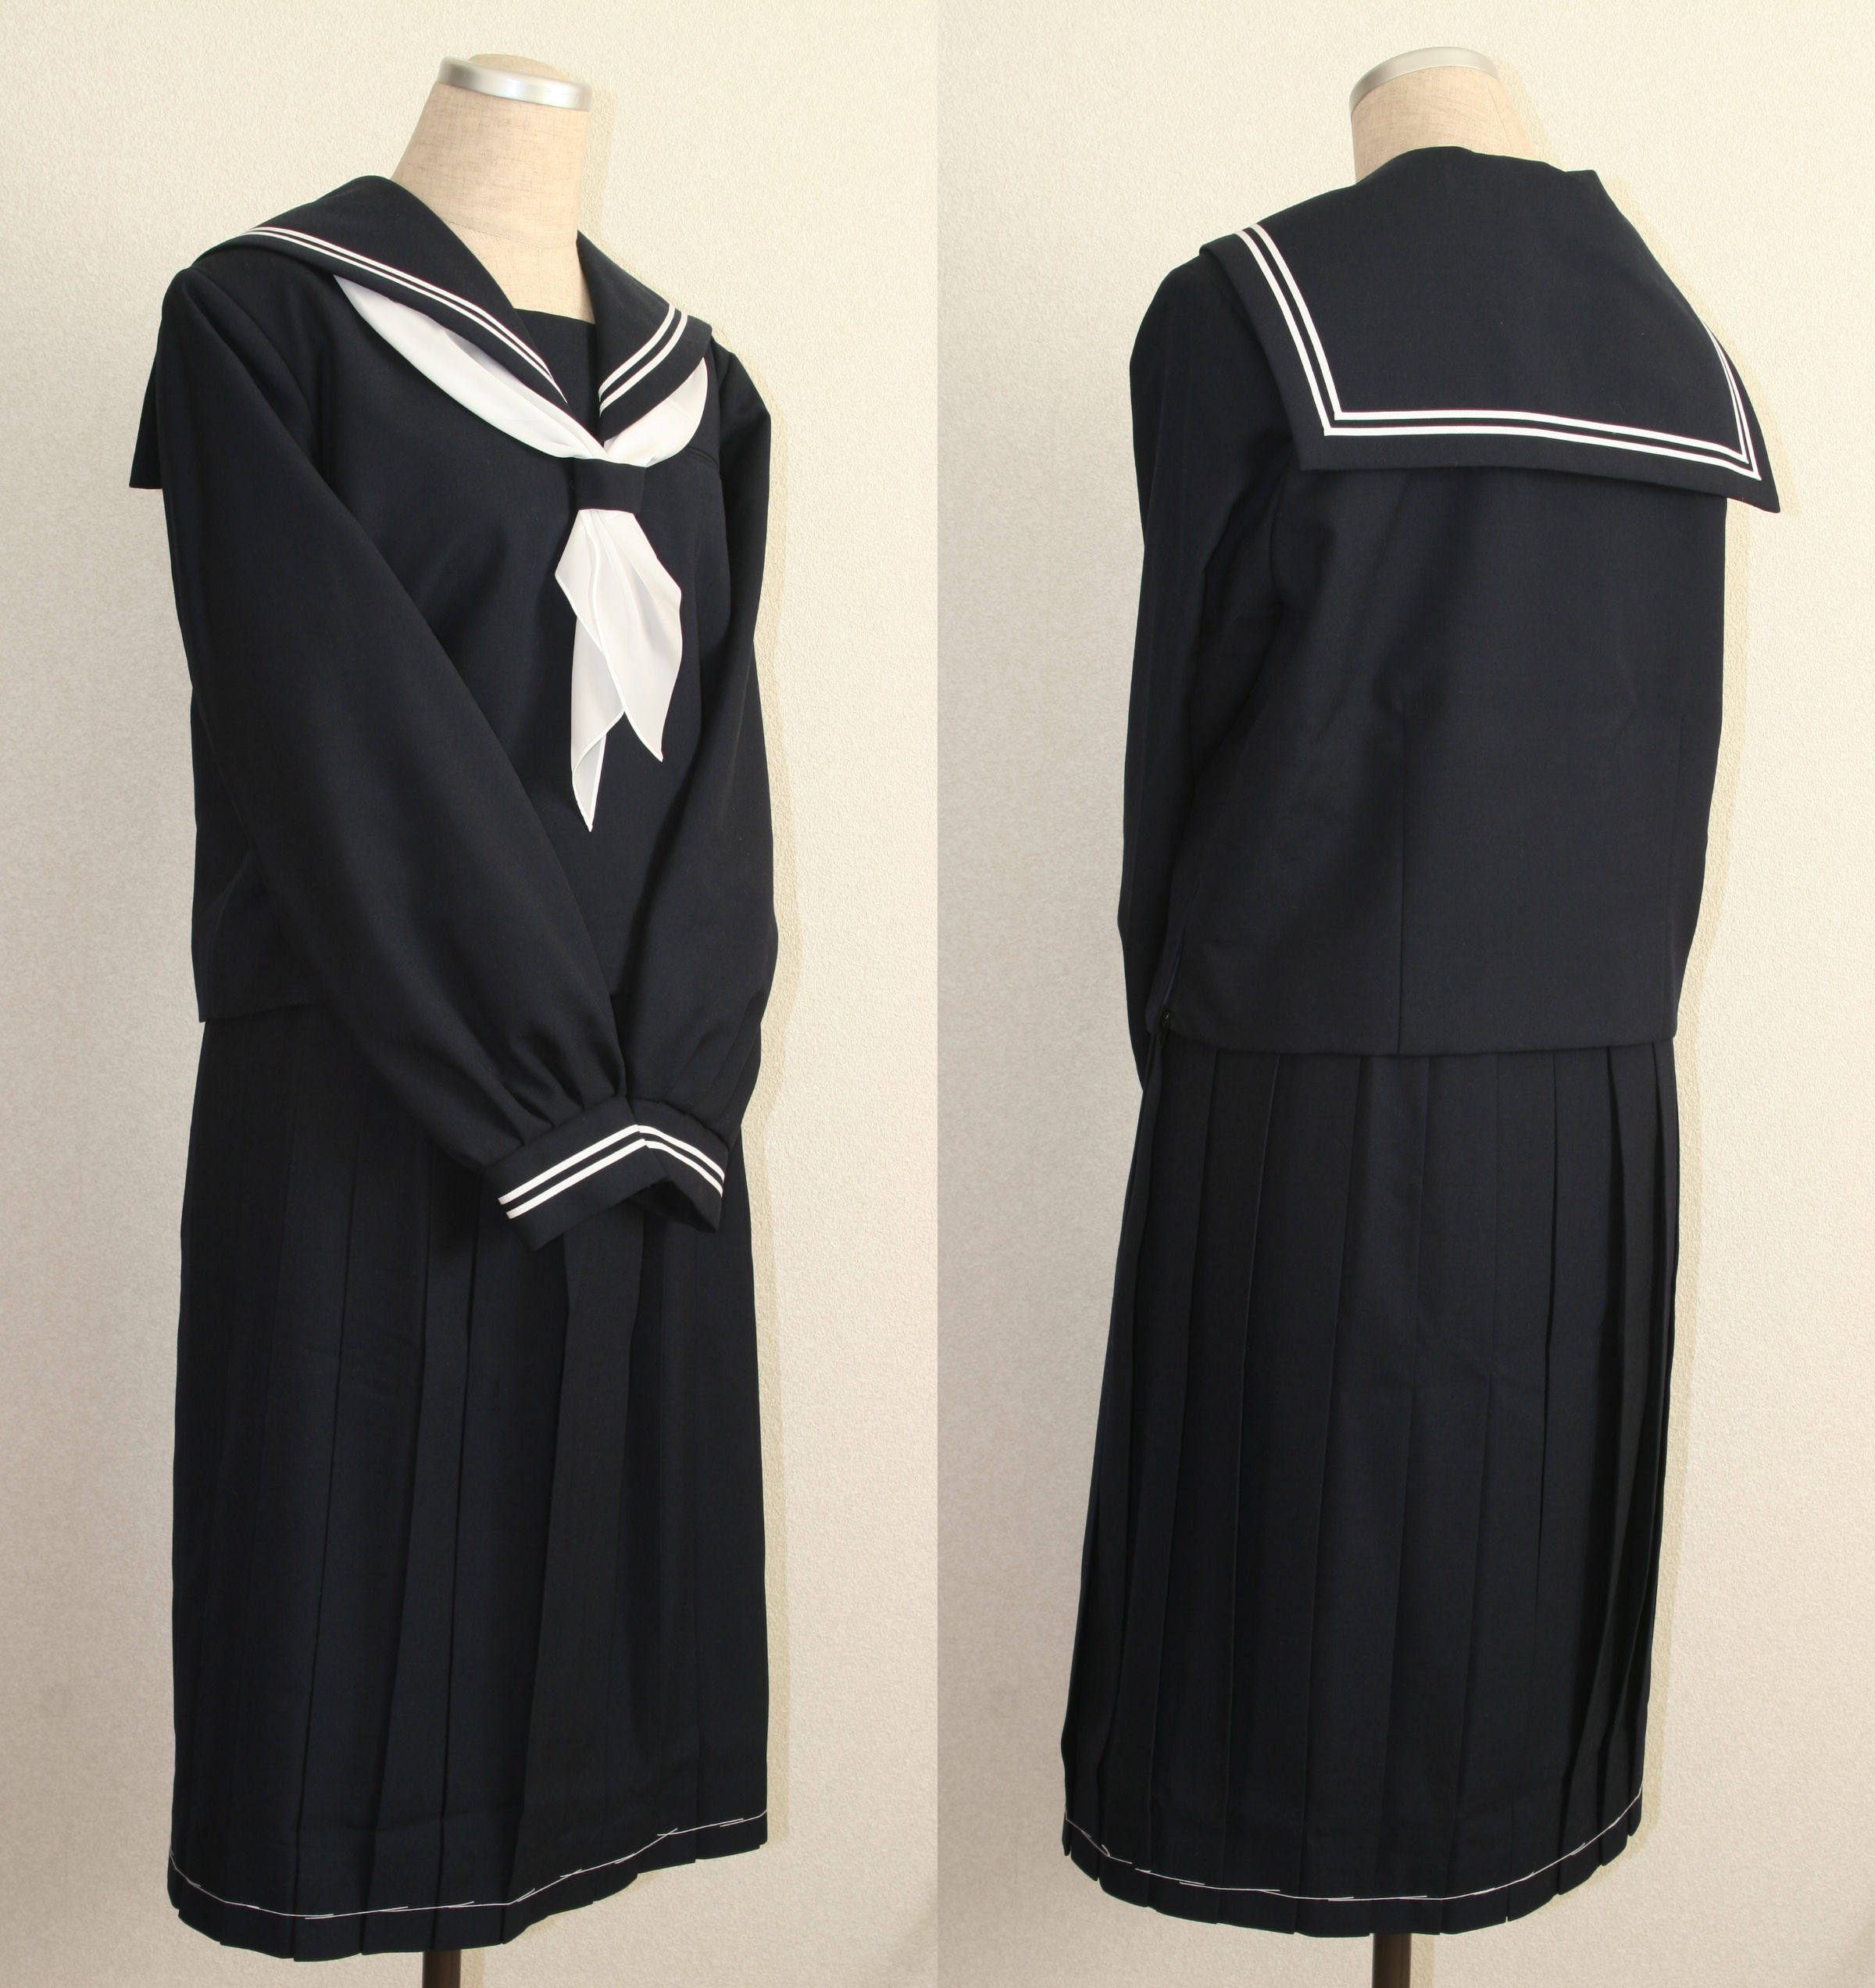 bfbdc9a6fbf Japanese school uniform - Wikipedia